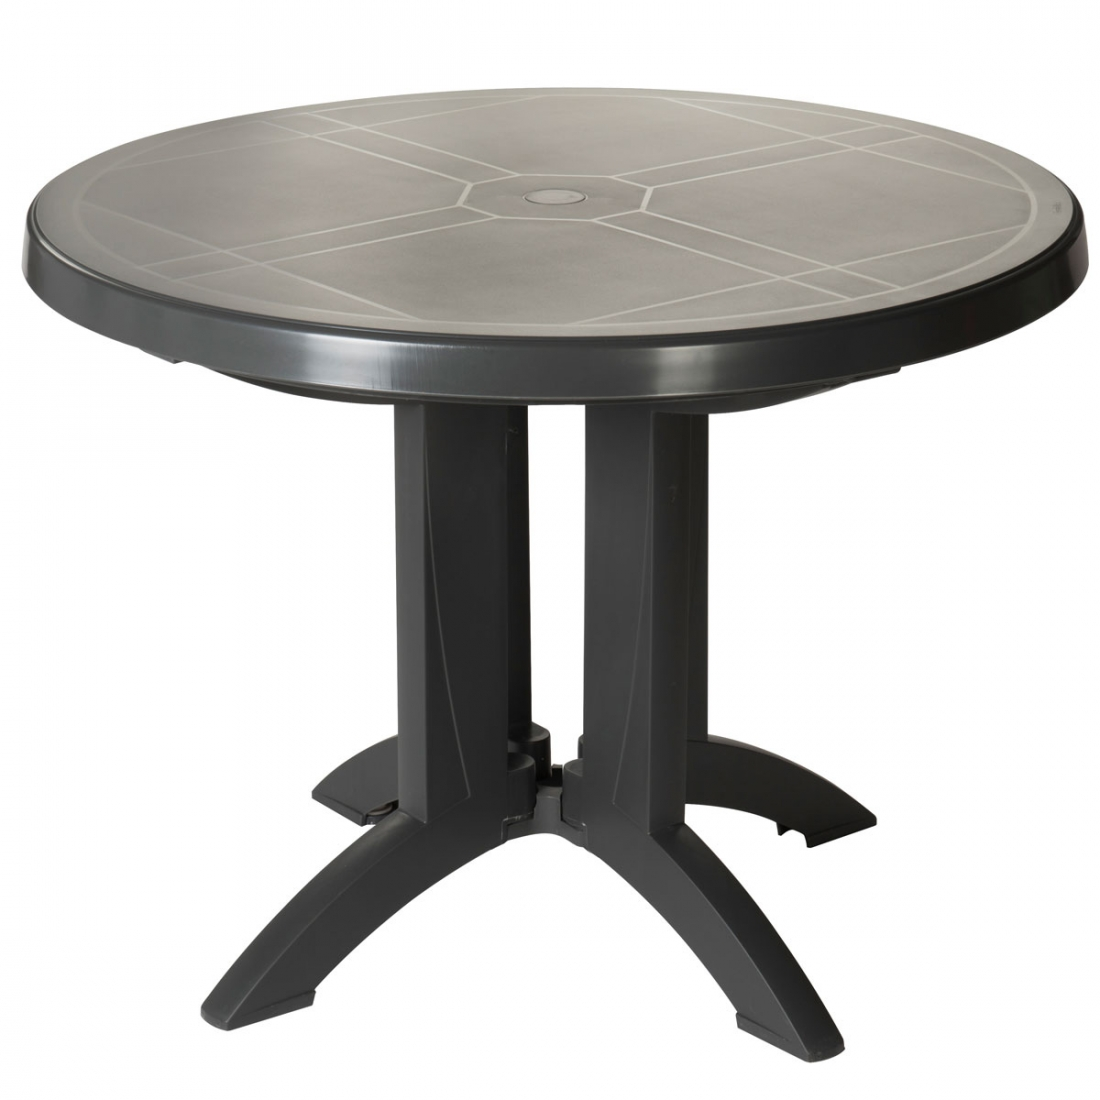 Table ronde de jardin vega grosfillex - Salon de jardin table ronde ...